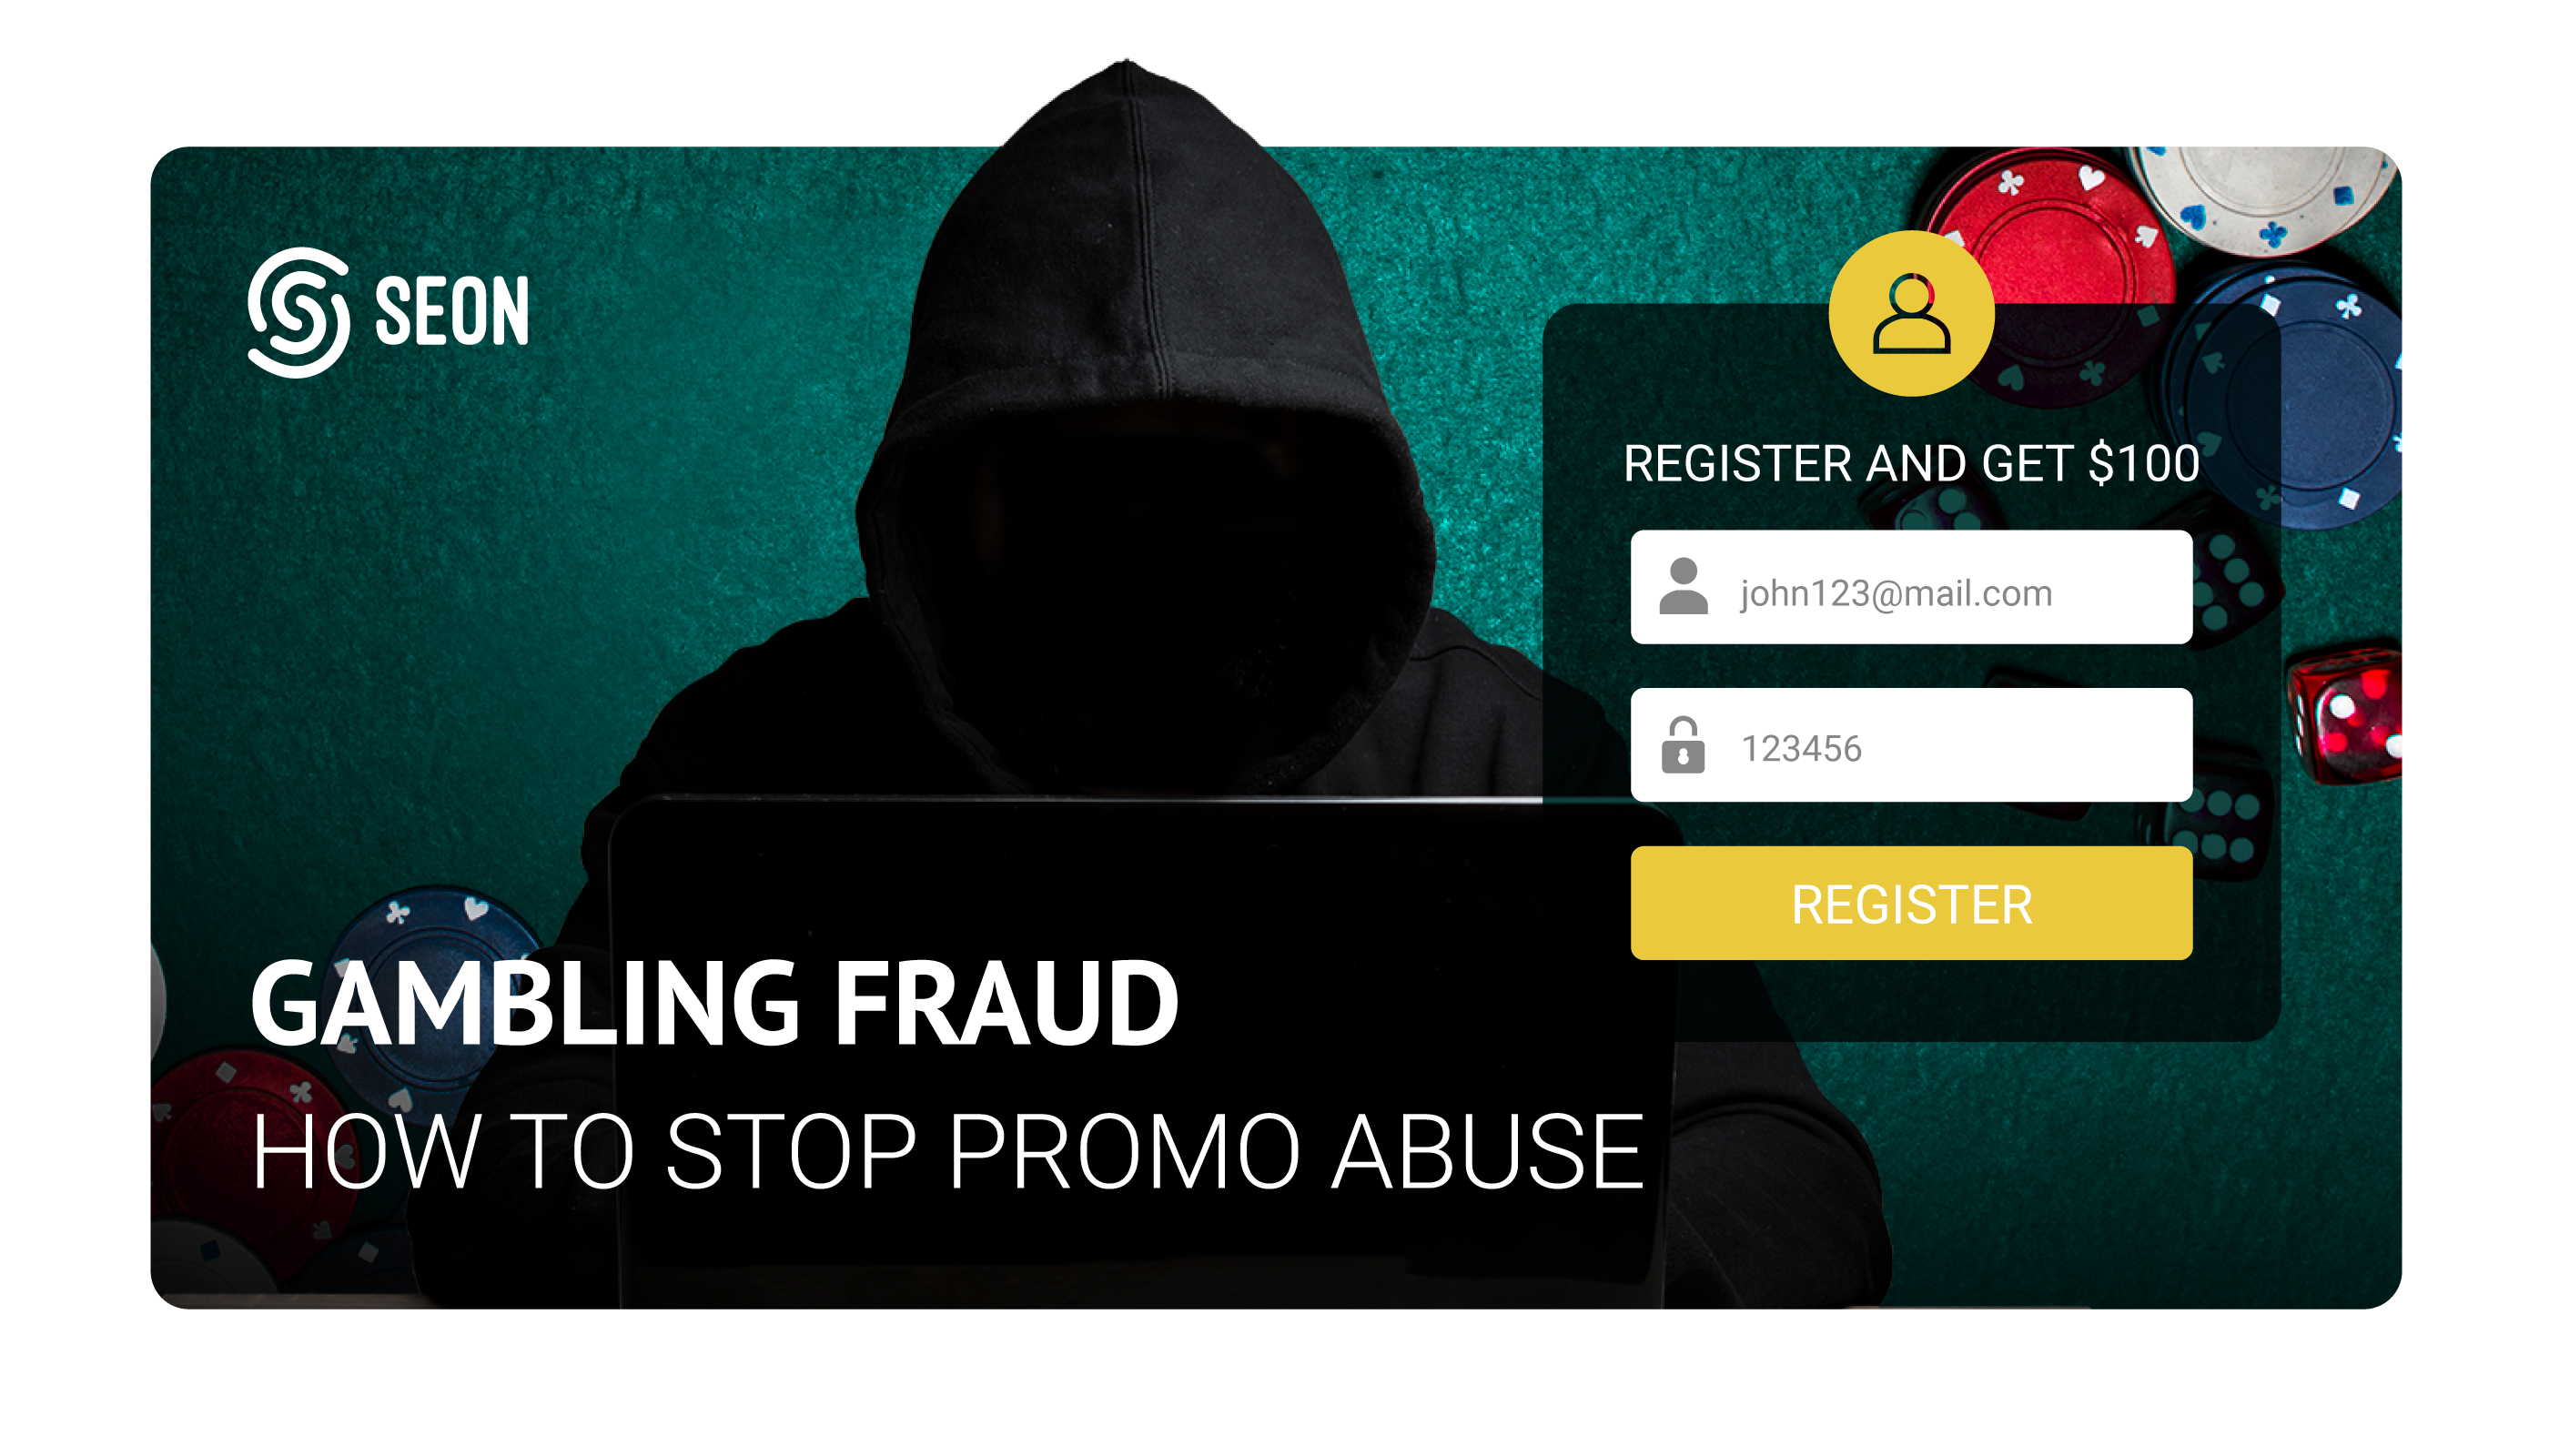 gambling-fraud-promo-abuse